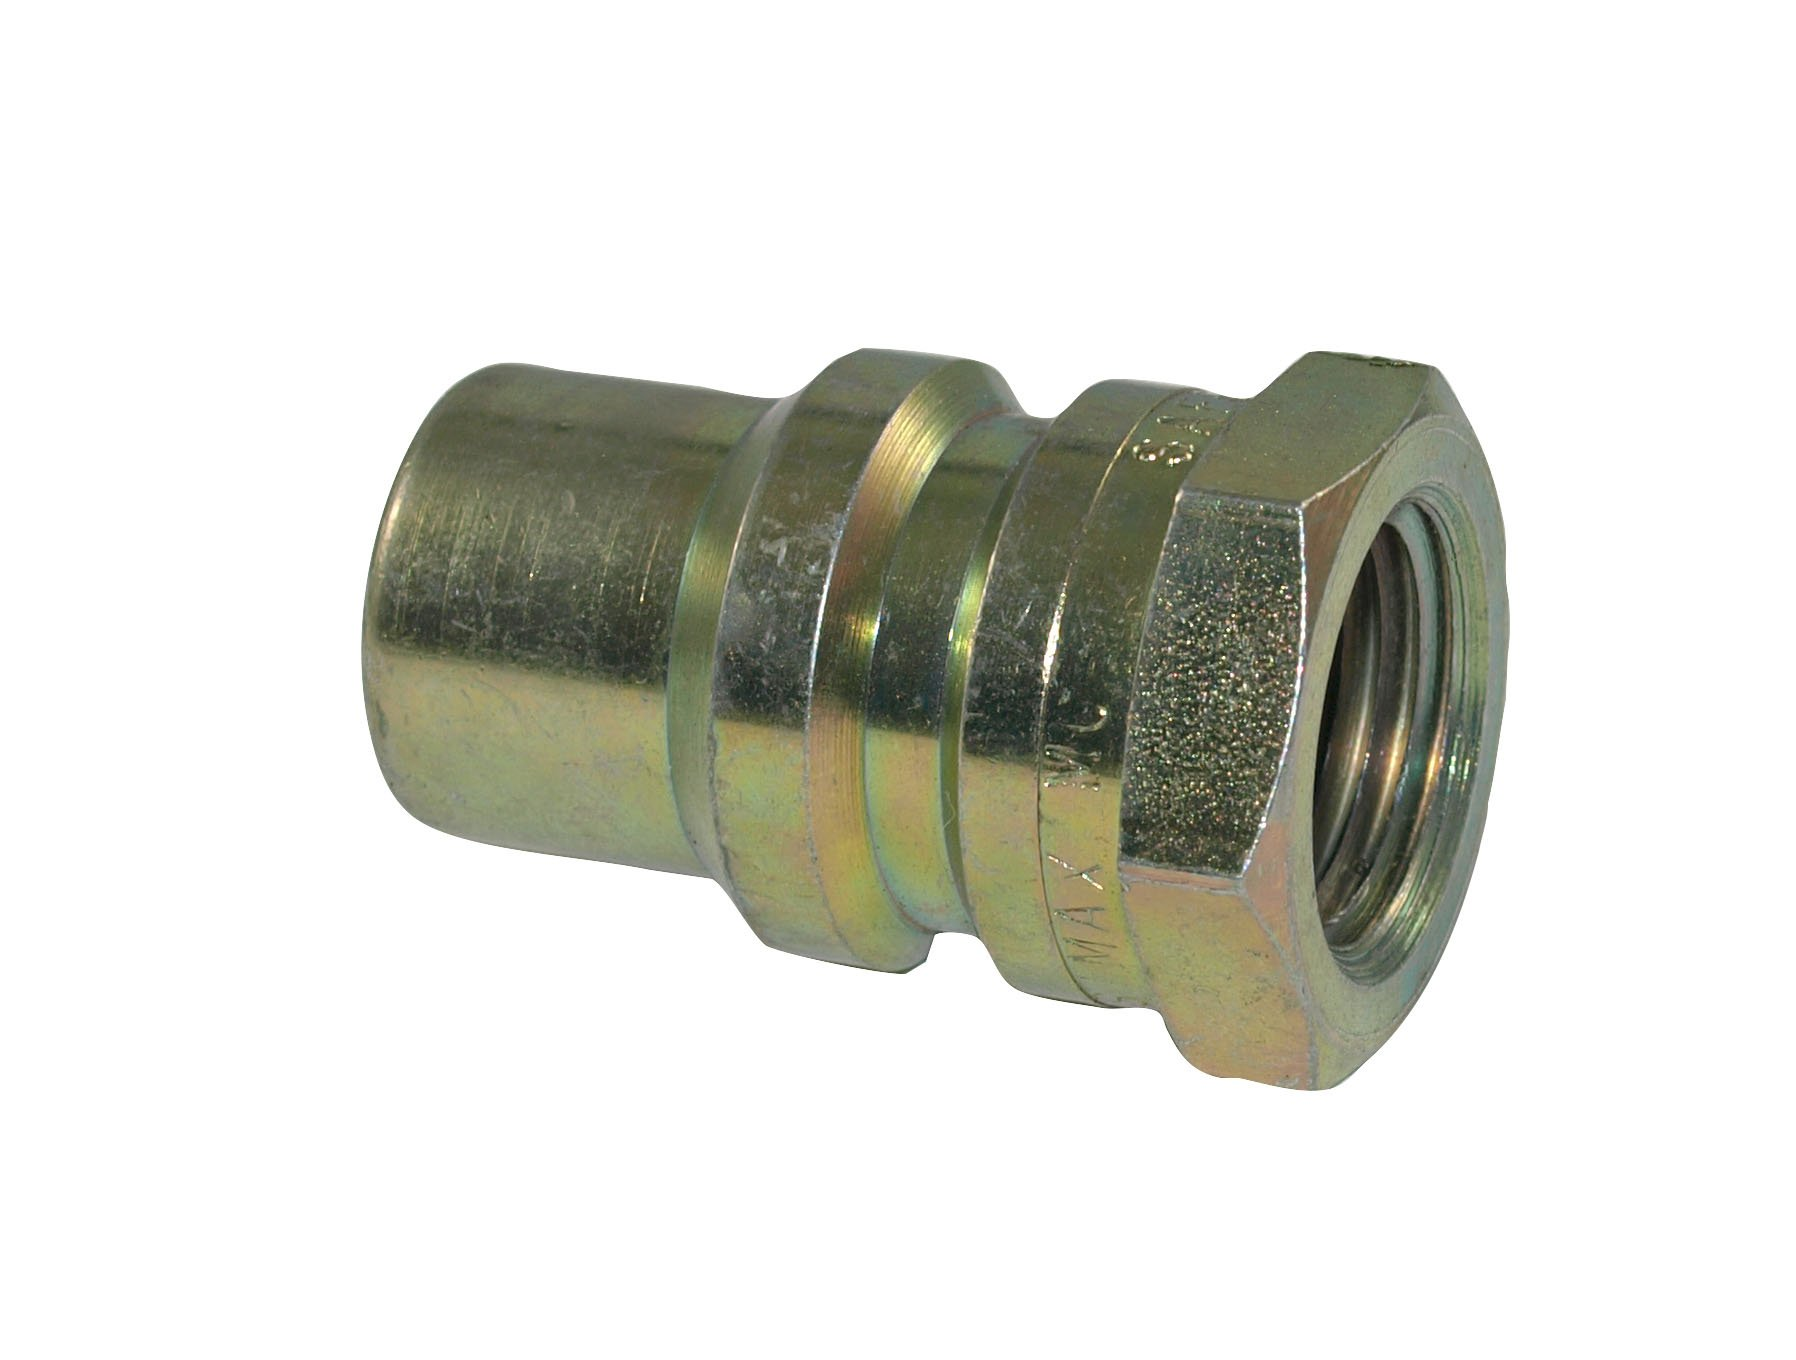 Apache 39041540 1/2'' J.I. Case Old Style Male Tip x 1/2'' Female Pipe Thread Hydraulic Quick Disconnect Adapter (S13-4)